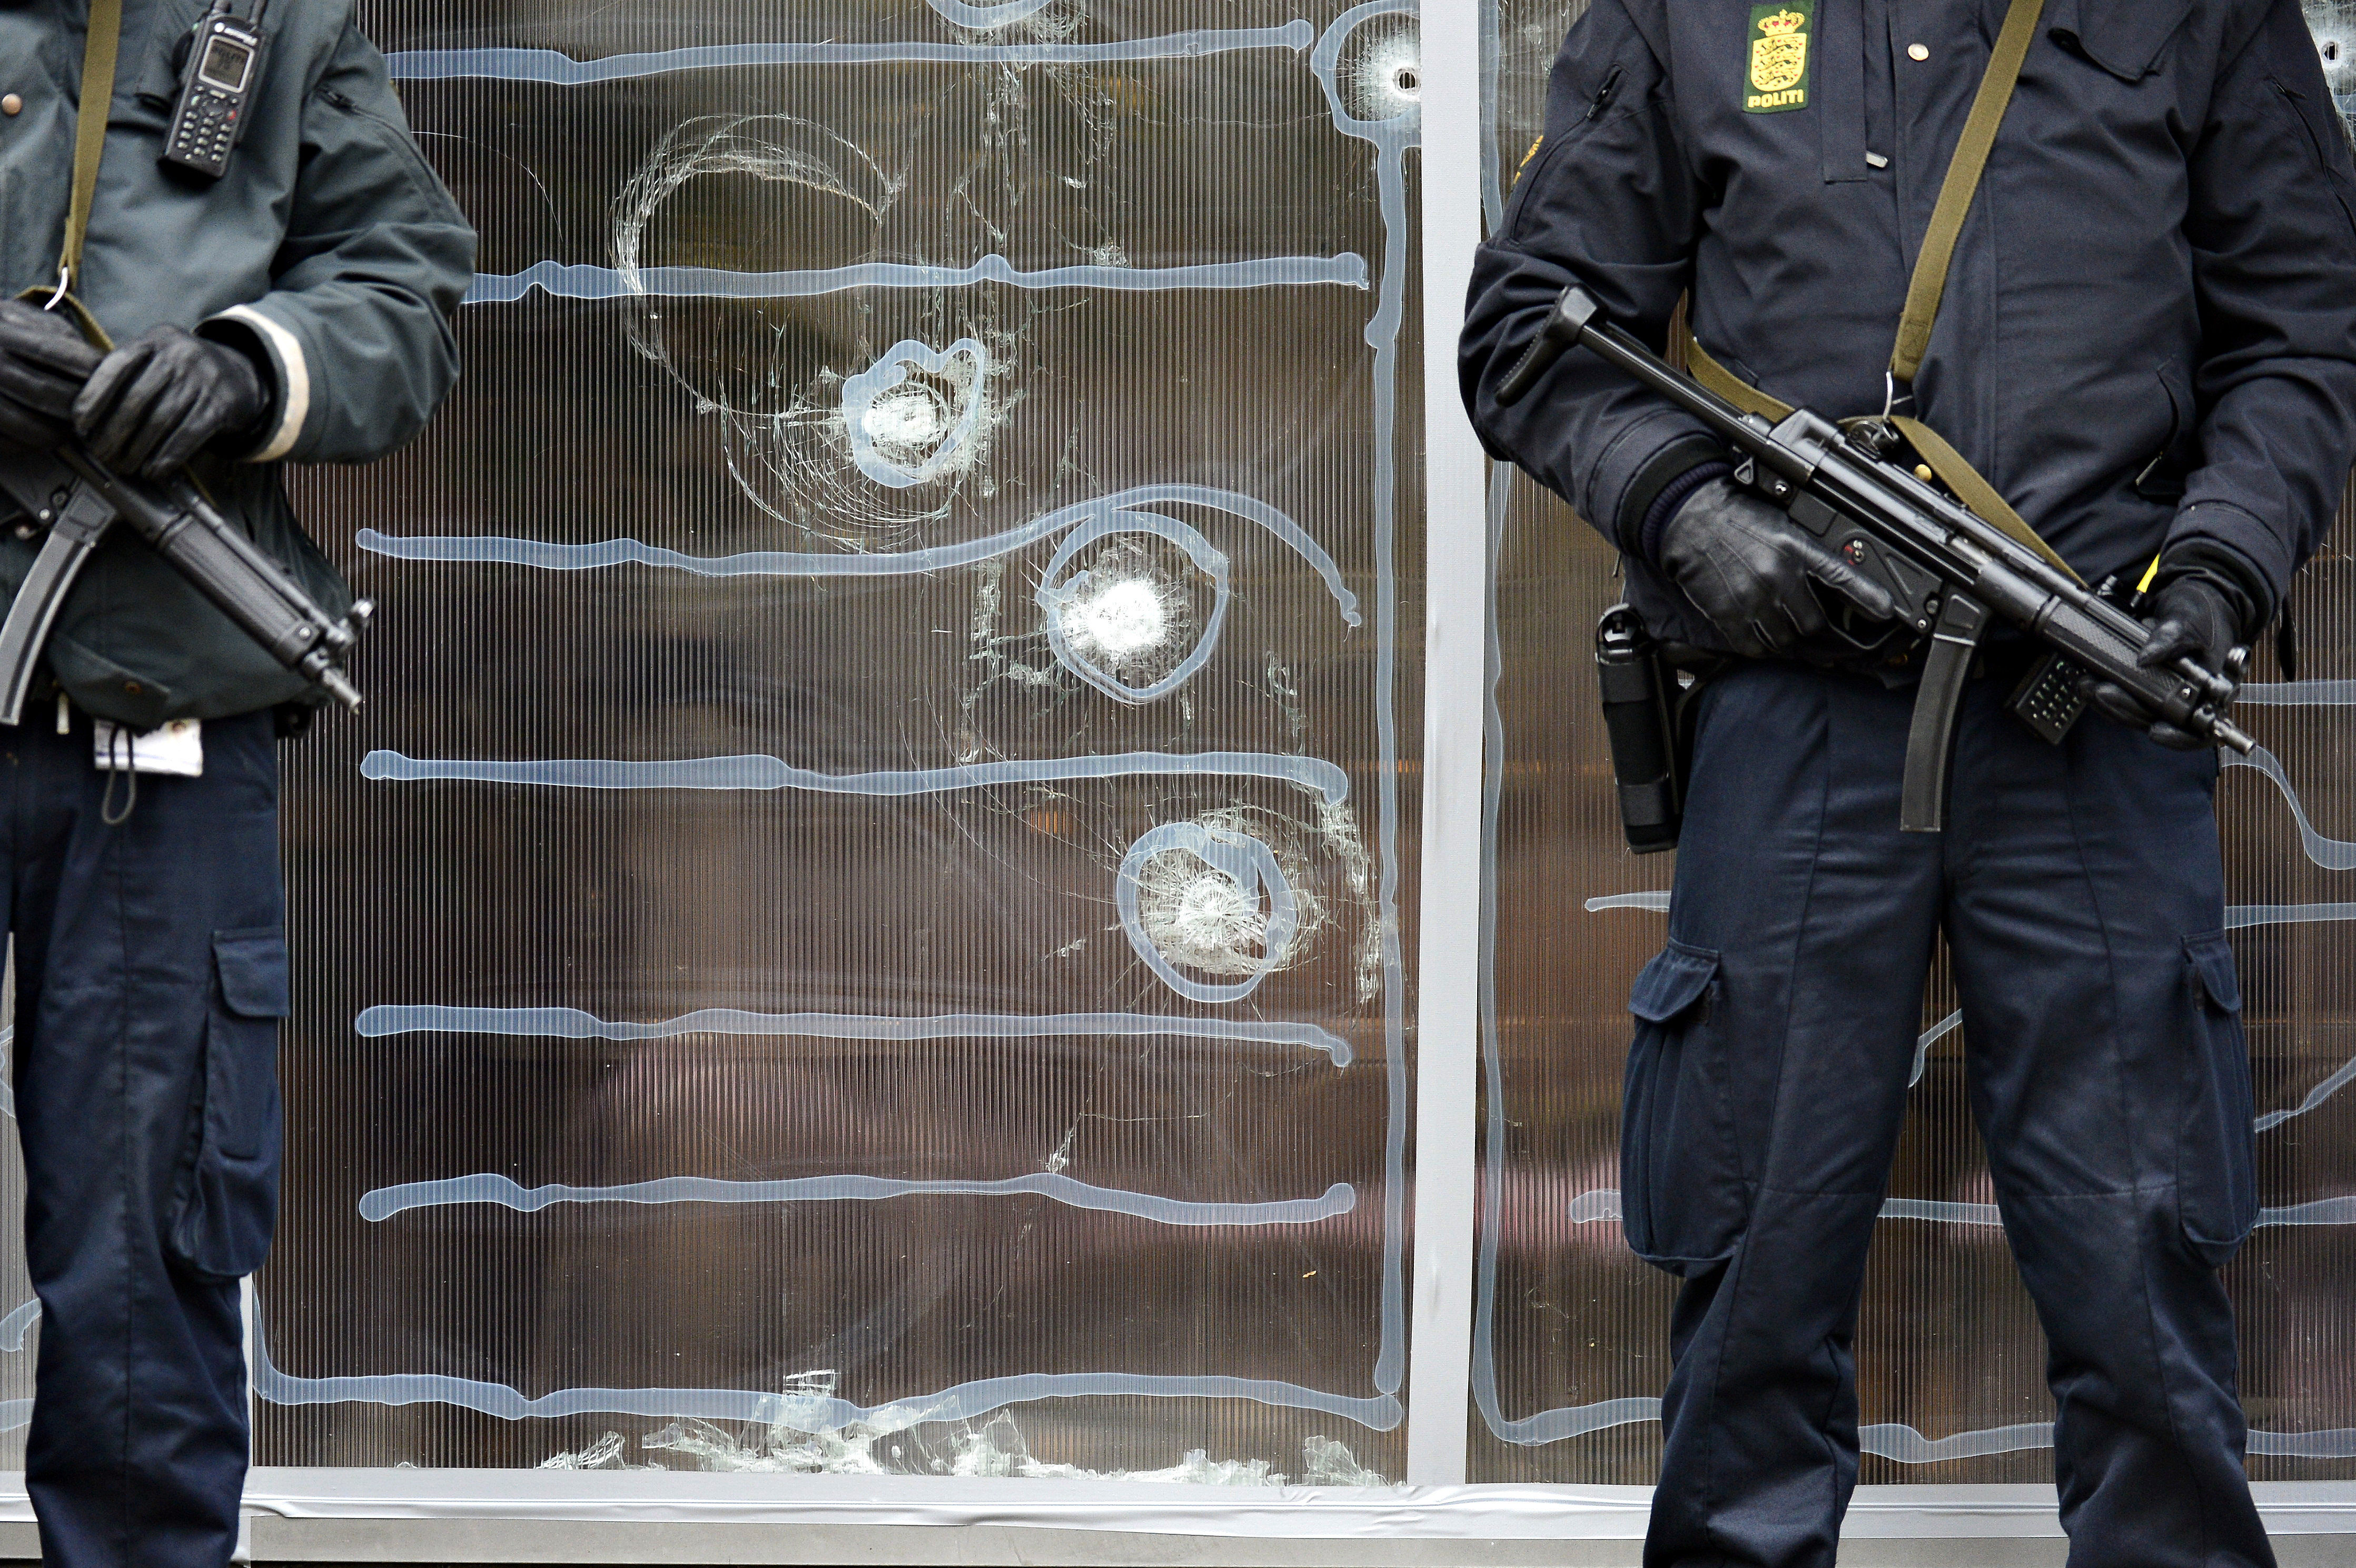 Danish police guards stand at the entrence of the cultural center Krudttonden in Copenhagen, Denmark. File photo